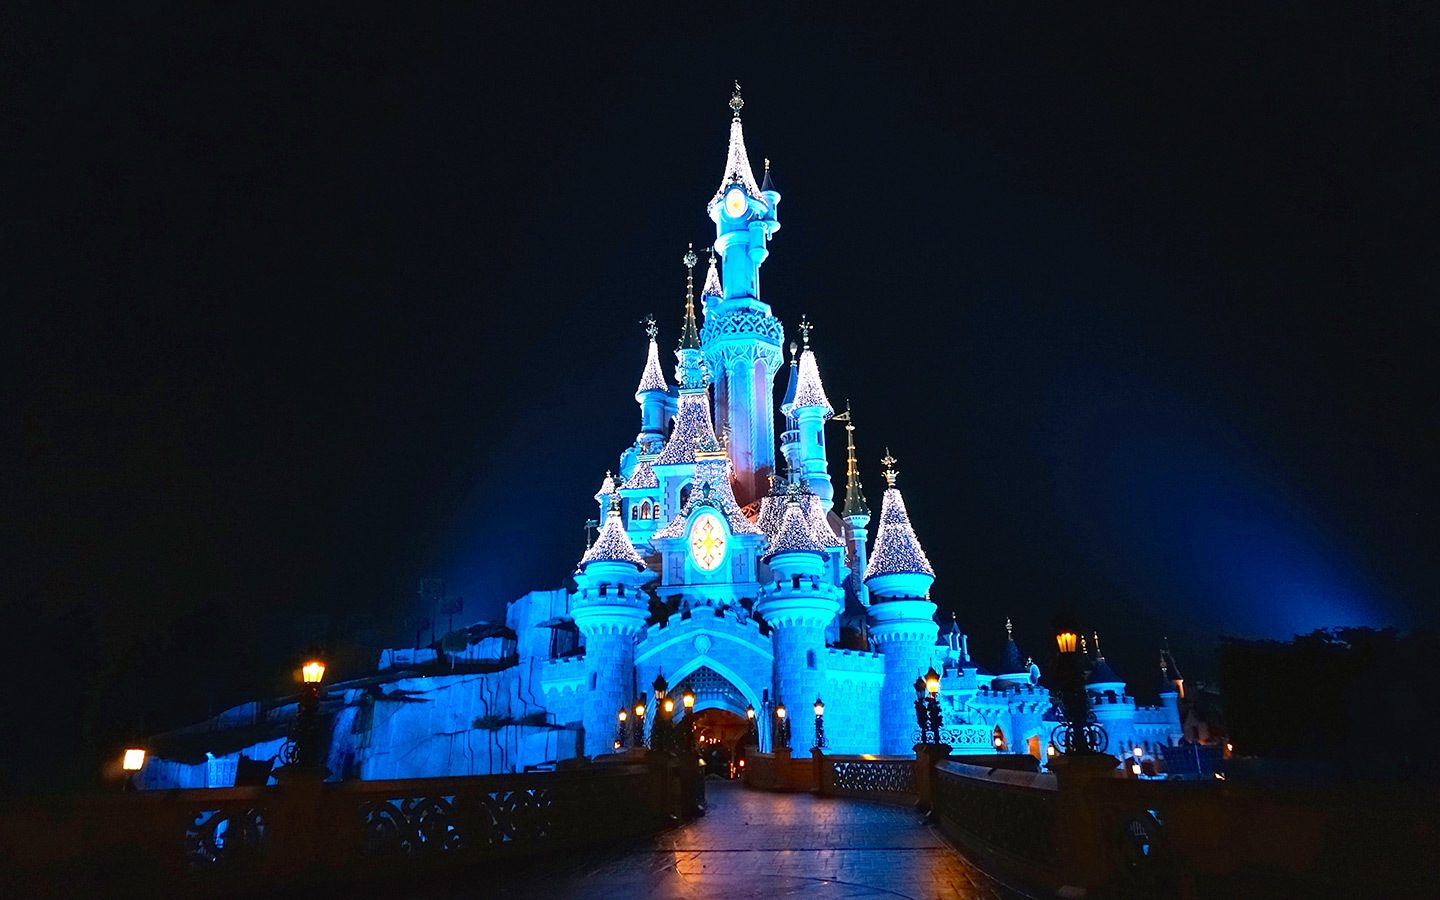 Enchanted Christmas at Disneyland Paris